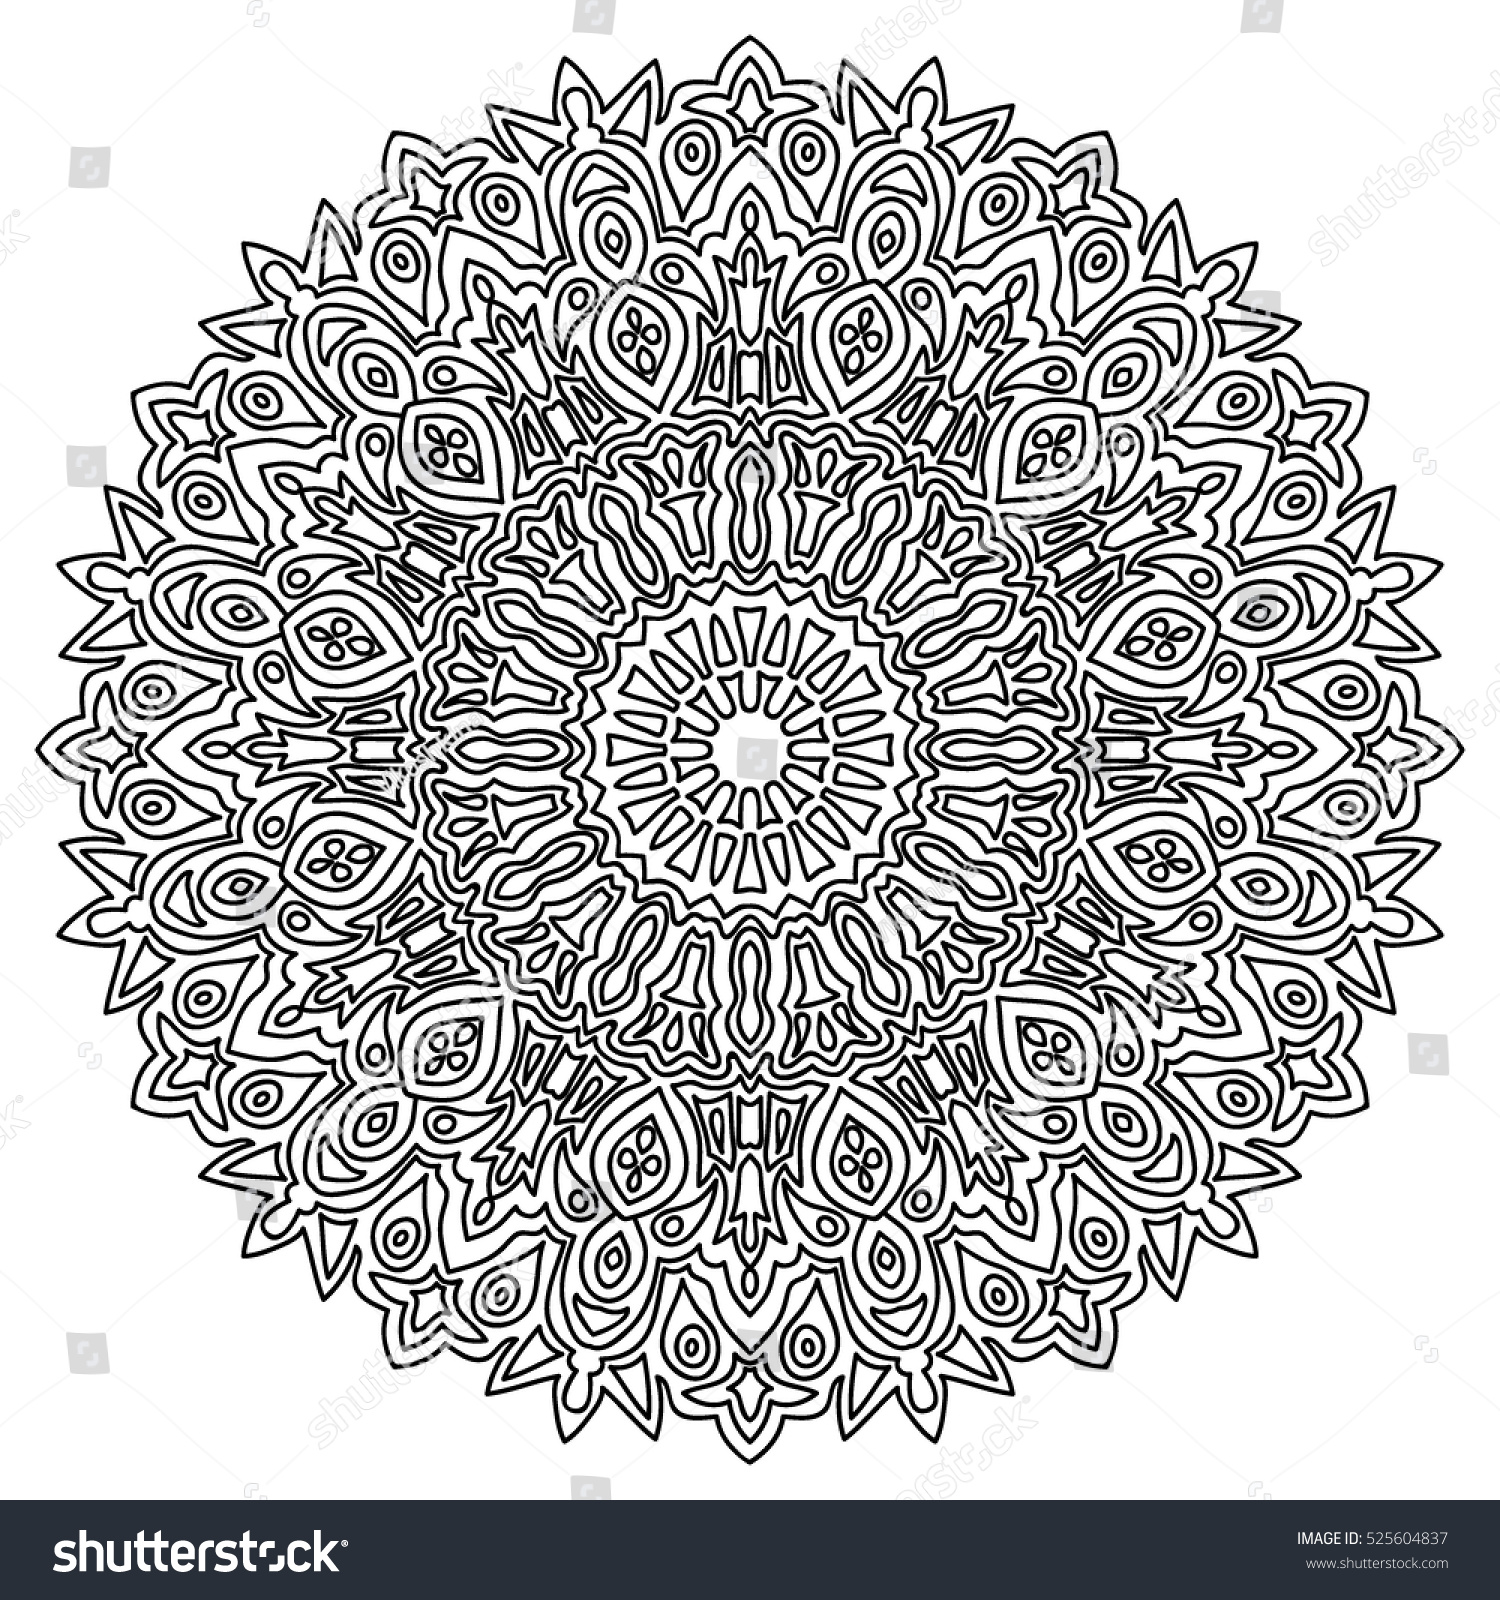 Adult Coloring Book Page Black White Stock Vector 525604837